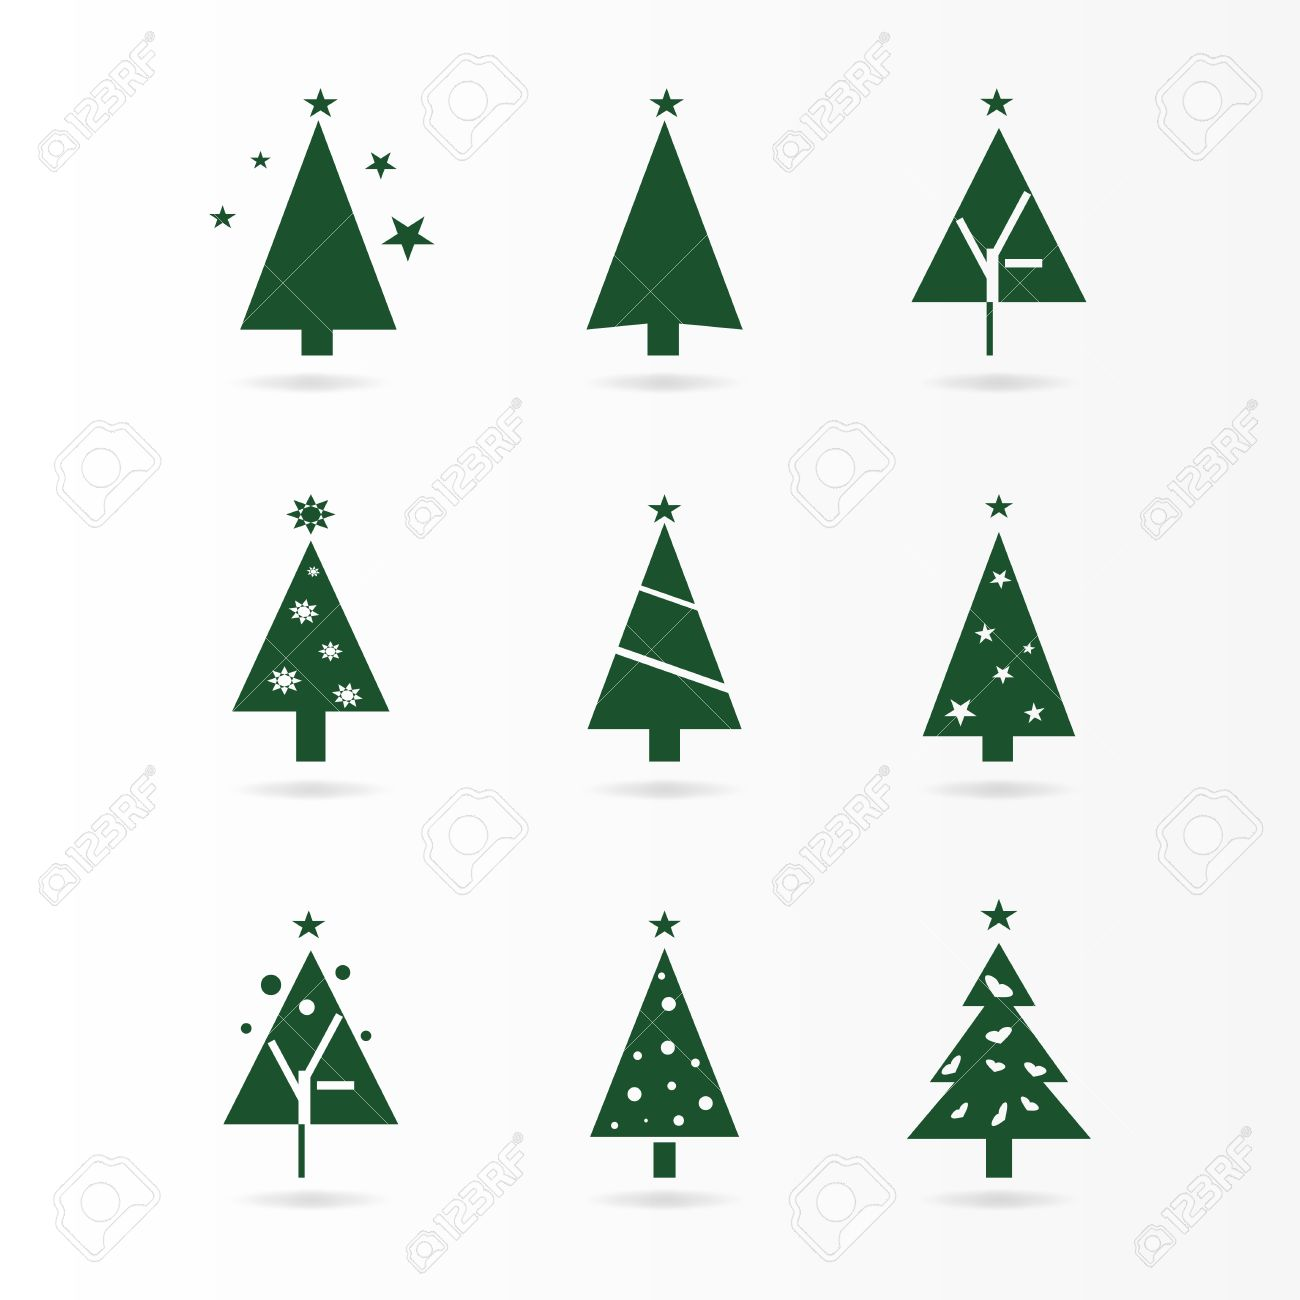 Weihnachtsbaum Design.Stock Photo